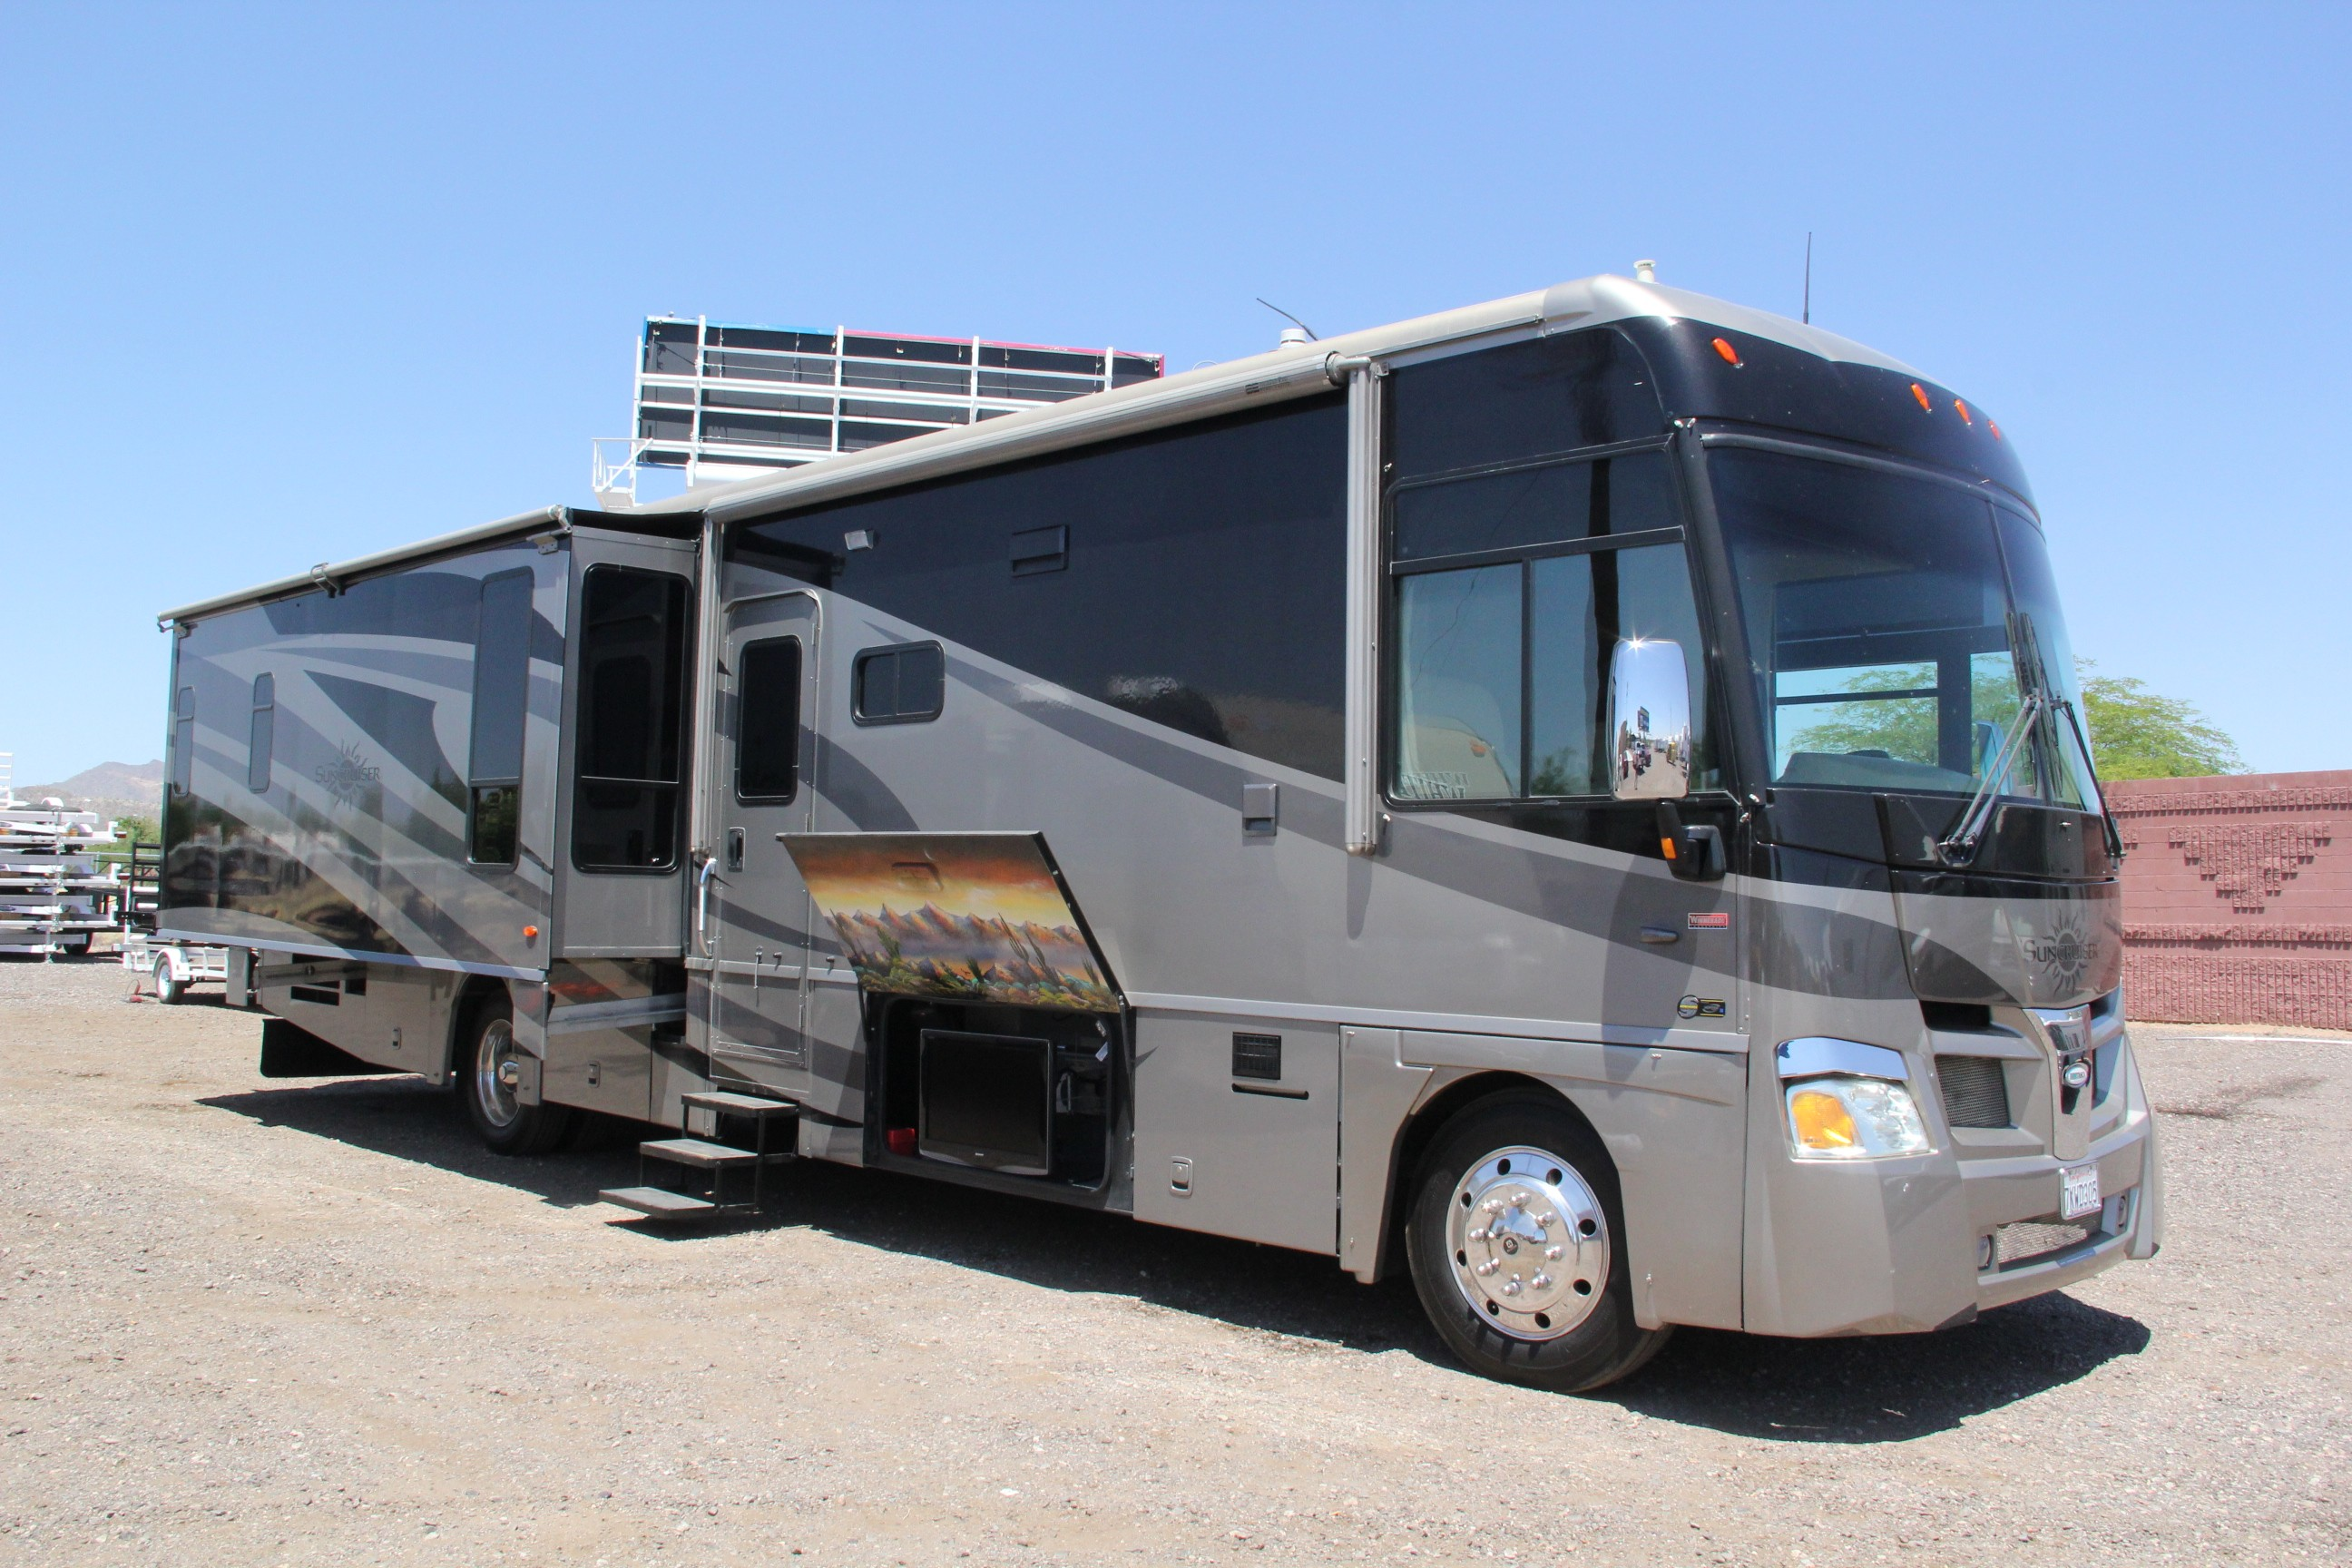 Pre Owned Toy Haulers Fifth Wheels And Motor Homes Available